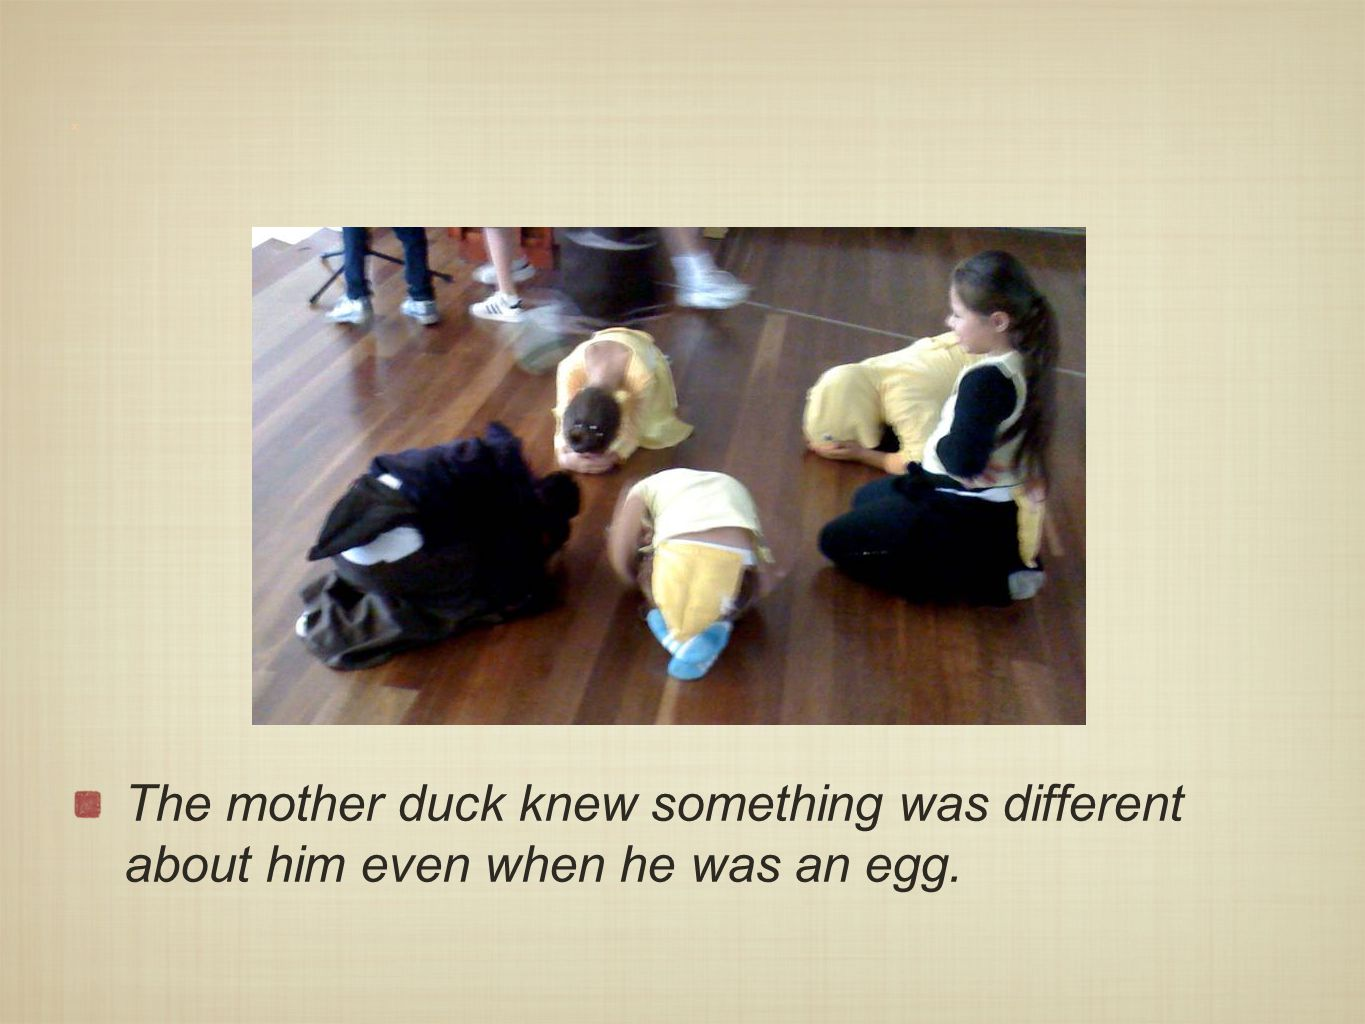 x The mother duck knew something was different about him even when he was an egg.